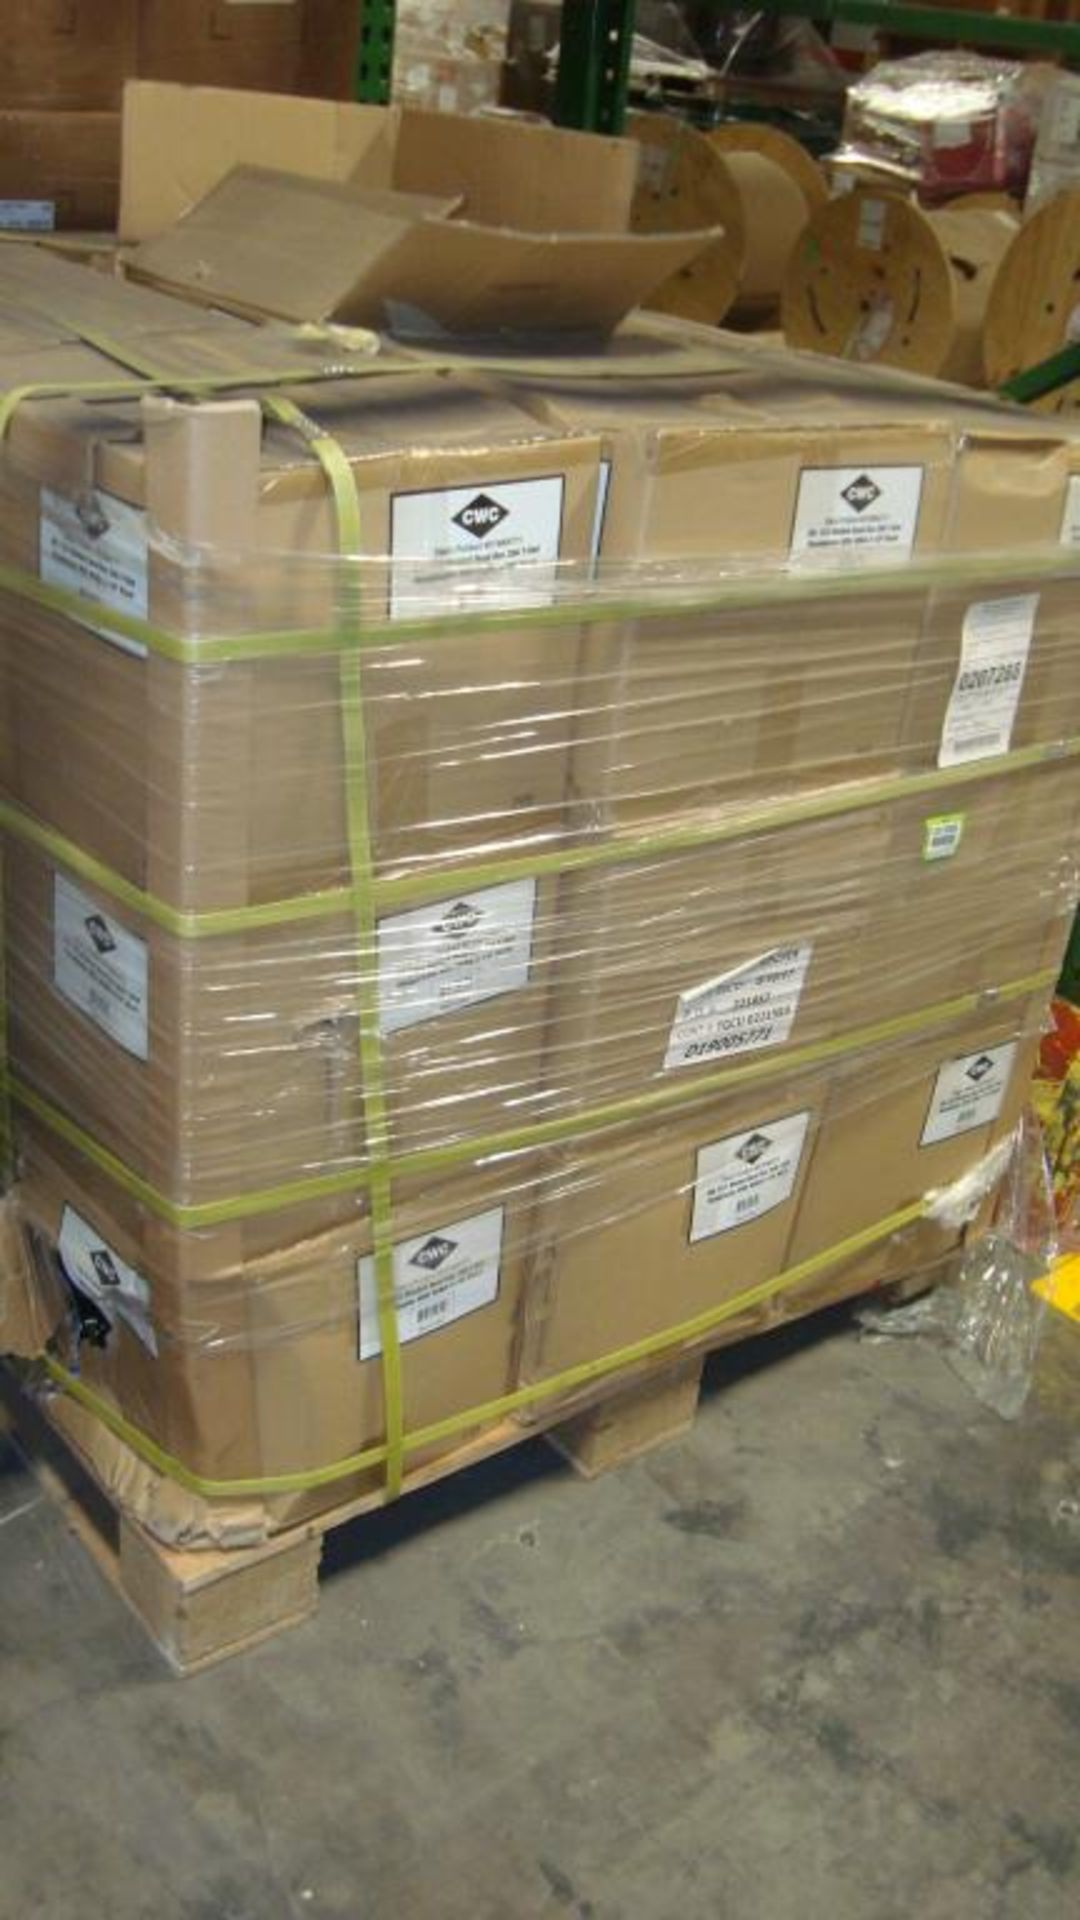 Extension Cords. Lot: 648 Total (27 Boxes - 24 ea.) Century Wire & Cable pn# D19005771 6ft Heavy - Image 9 of 9